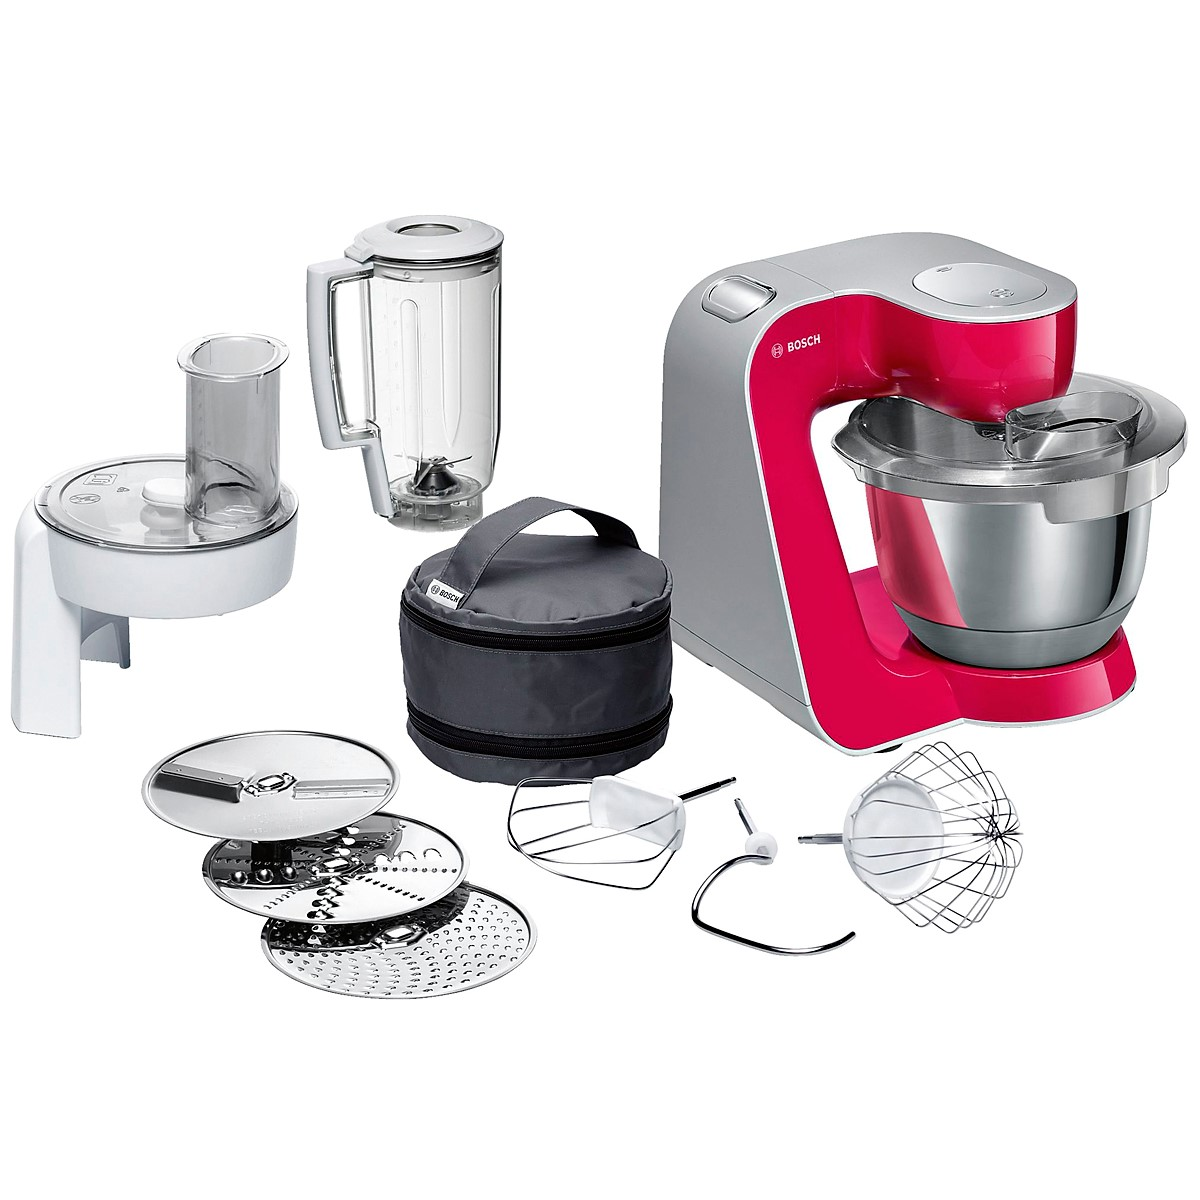 Bosch - Kitchen Machine MUM5 Styline Colour red diamond silver 4